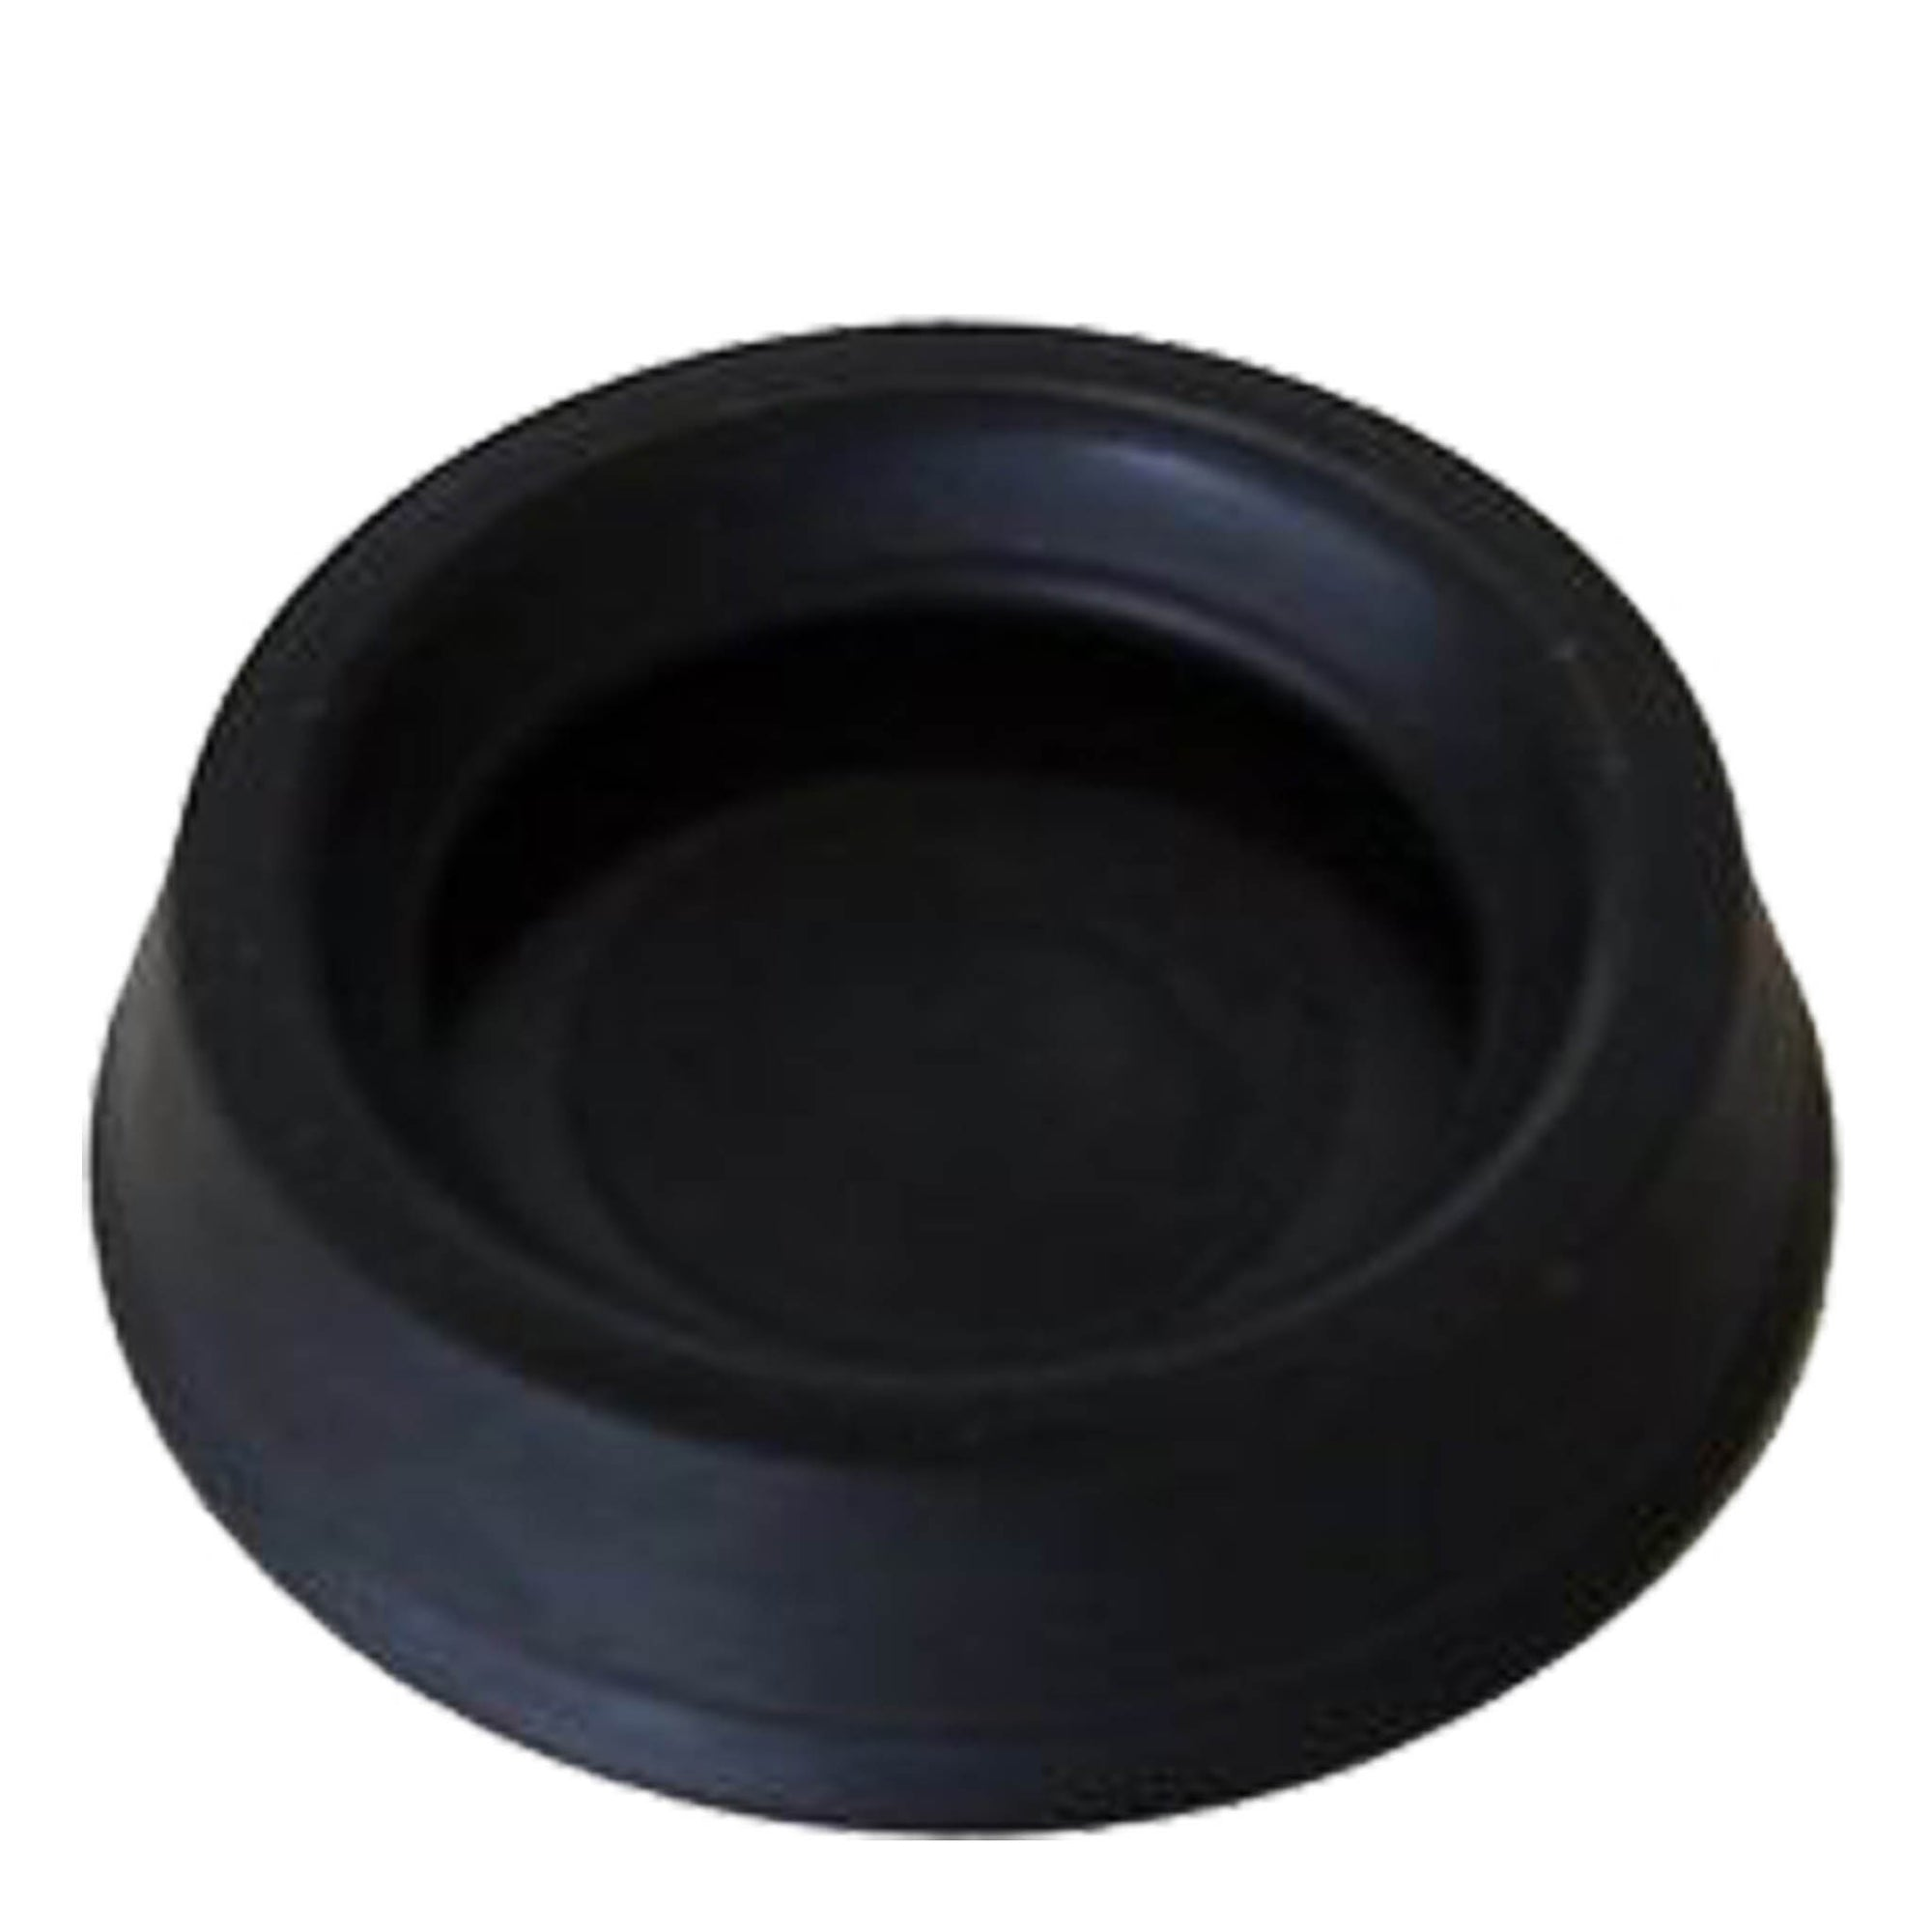 Aeropress Rubber Seal - Espresso Gear